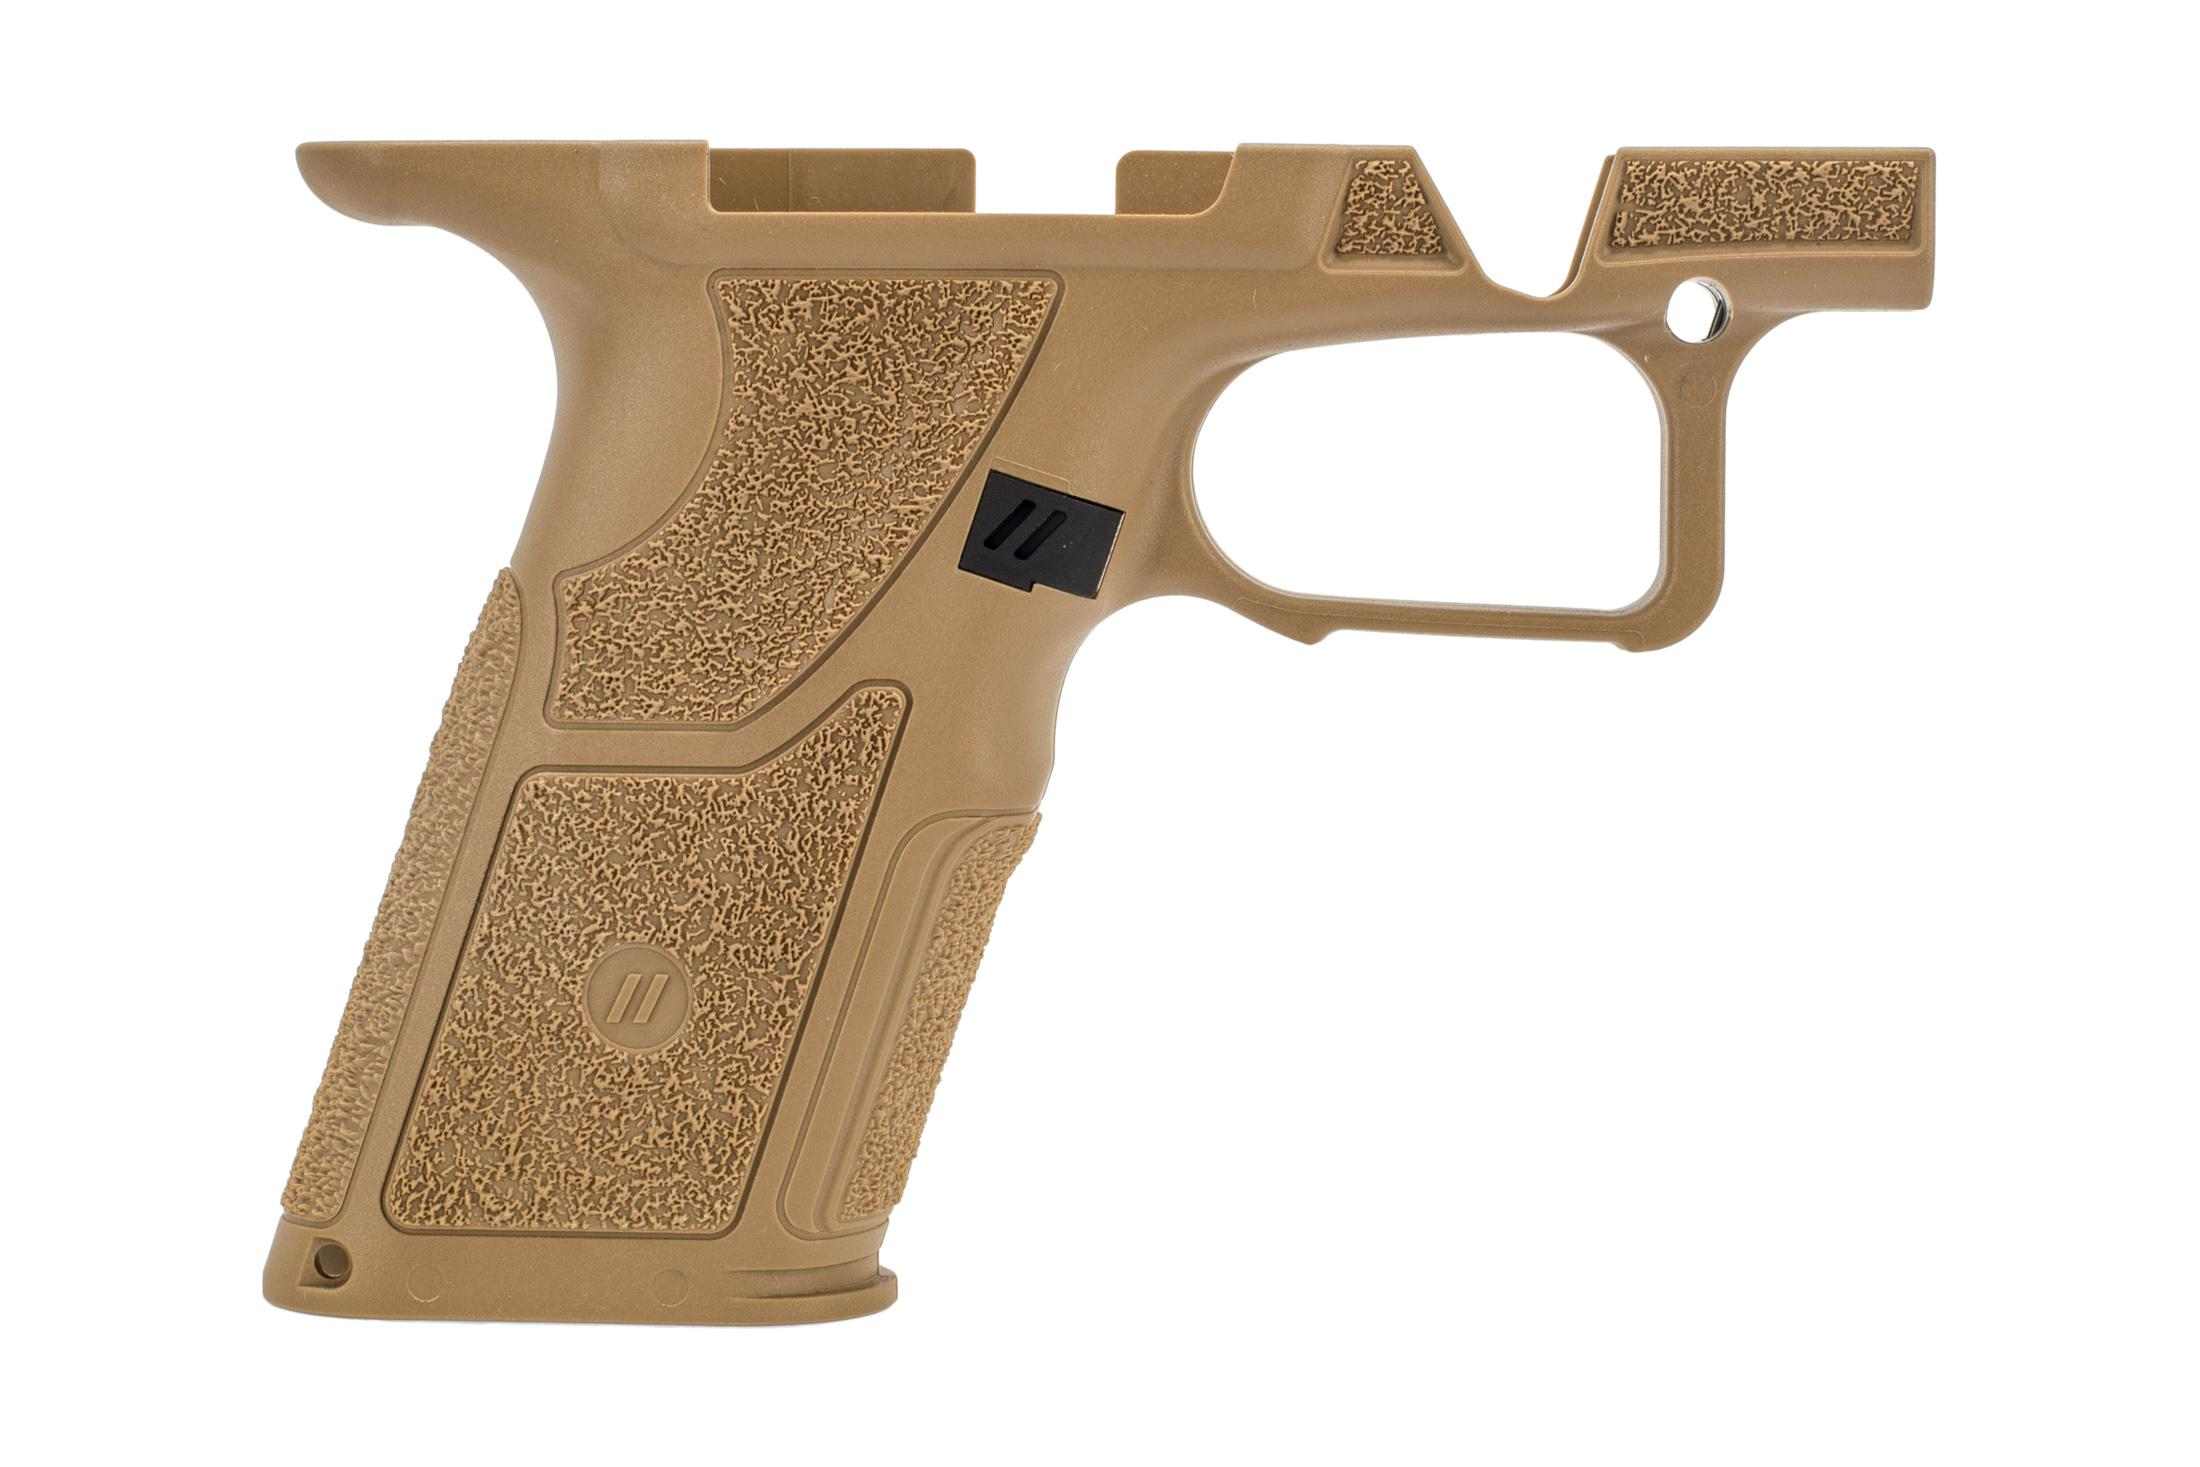 Zev Technologies OZ9 FDE Grip Module is standard size fo use with full size G17 magazines